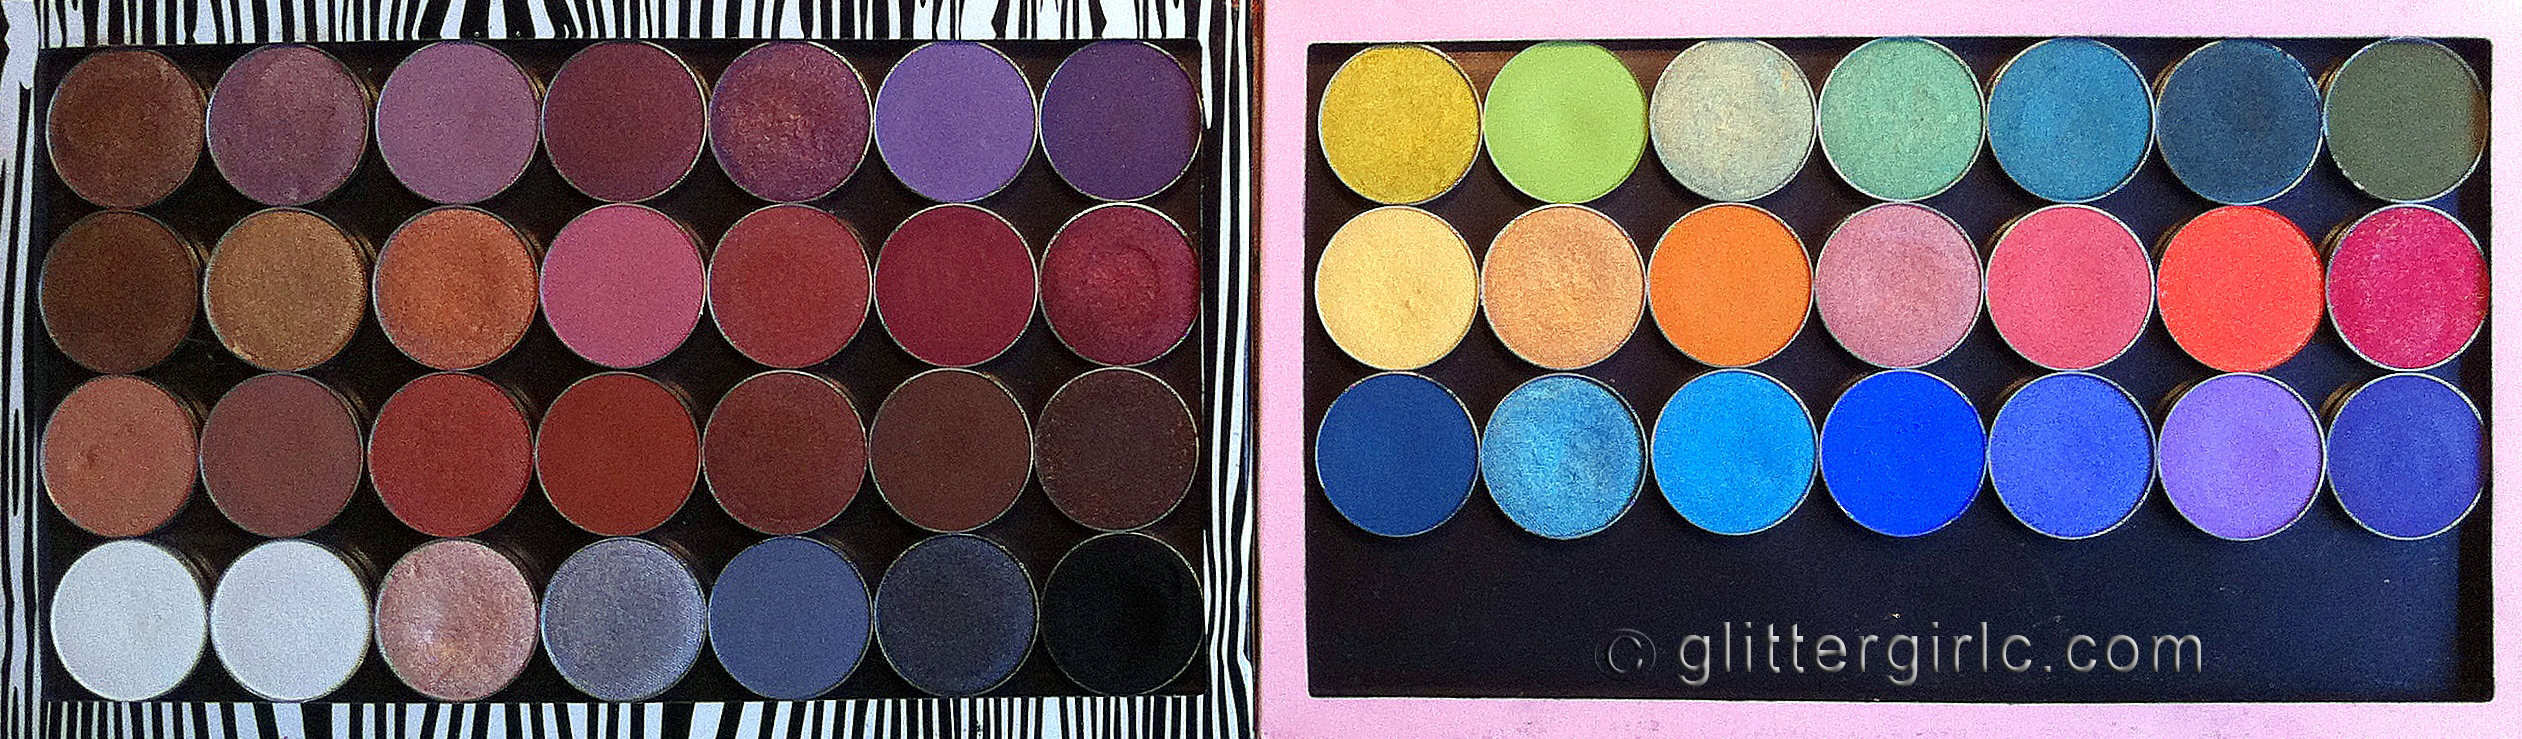 Where to buy makeup geek eyeshadow